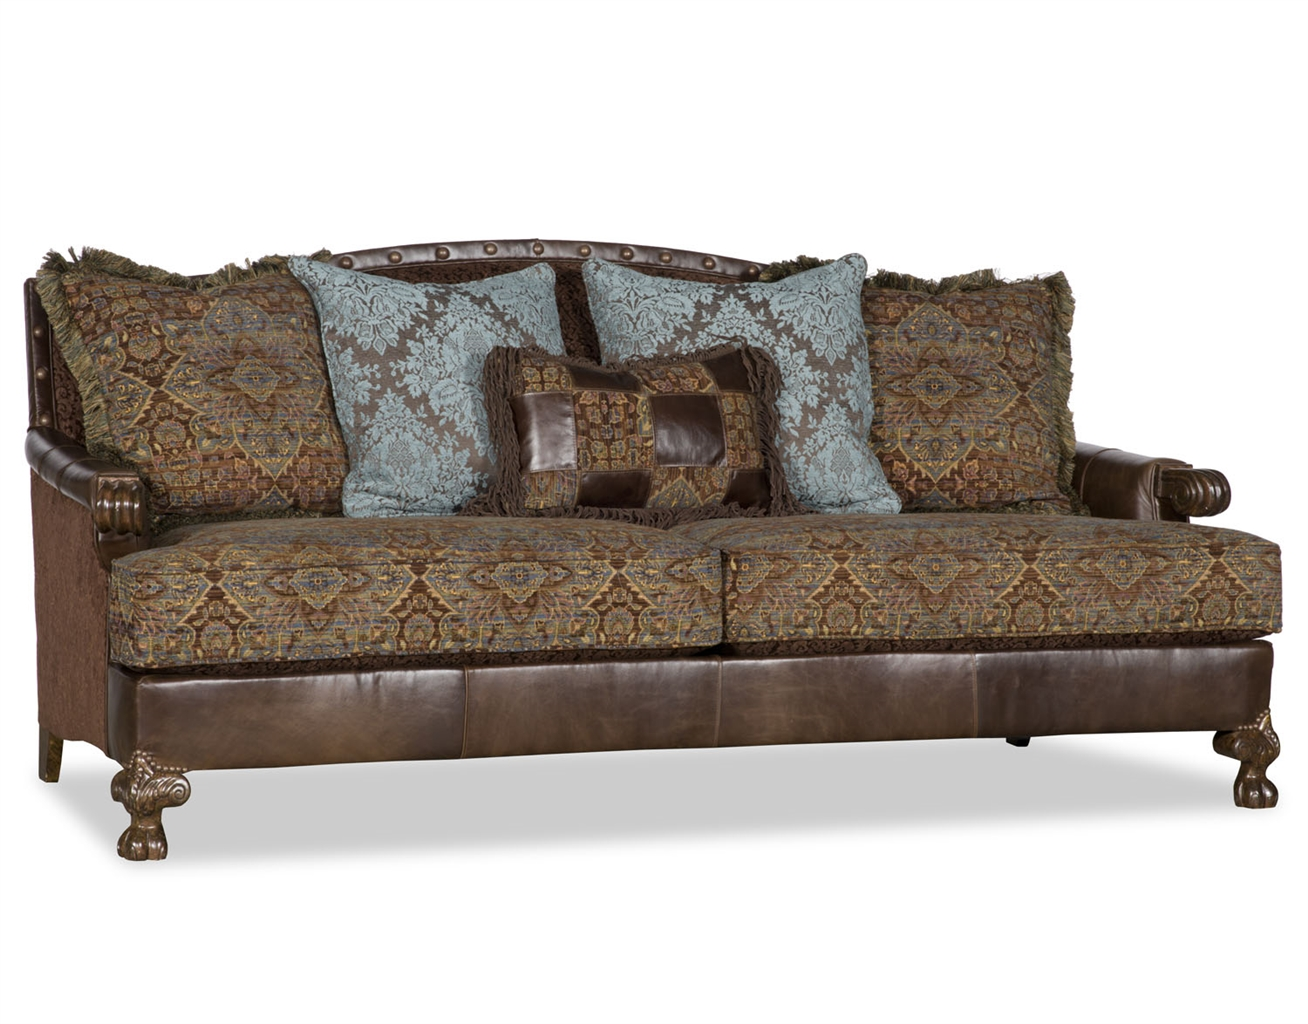 Colorful printed fabric upholstered sofa for Best quality upholstered furniture